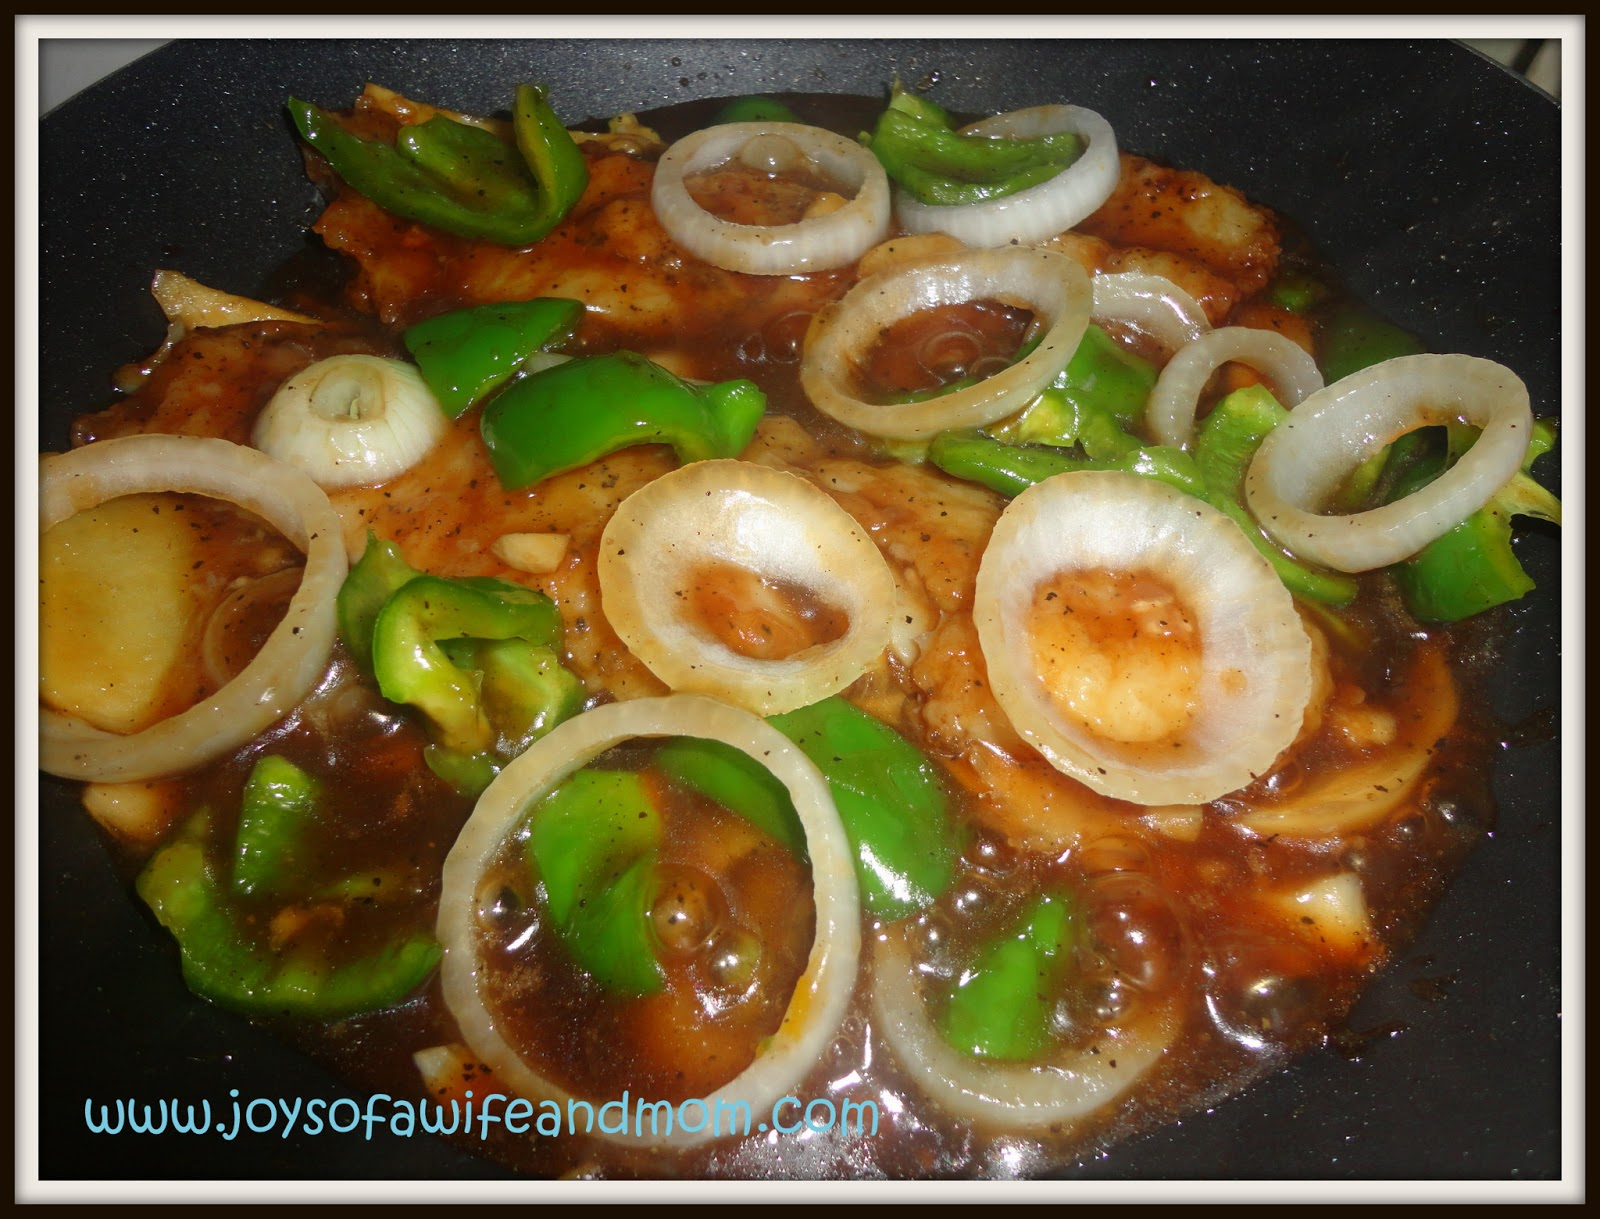 Pa-Cham: Fish Fillet With Oyster Sauce